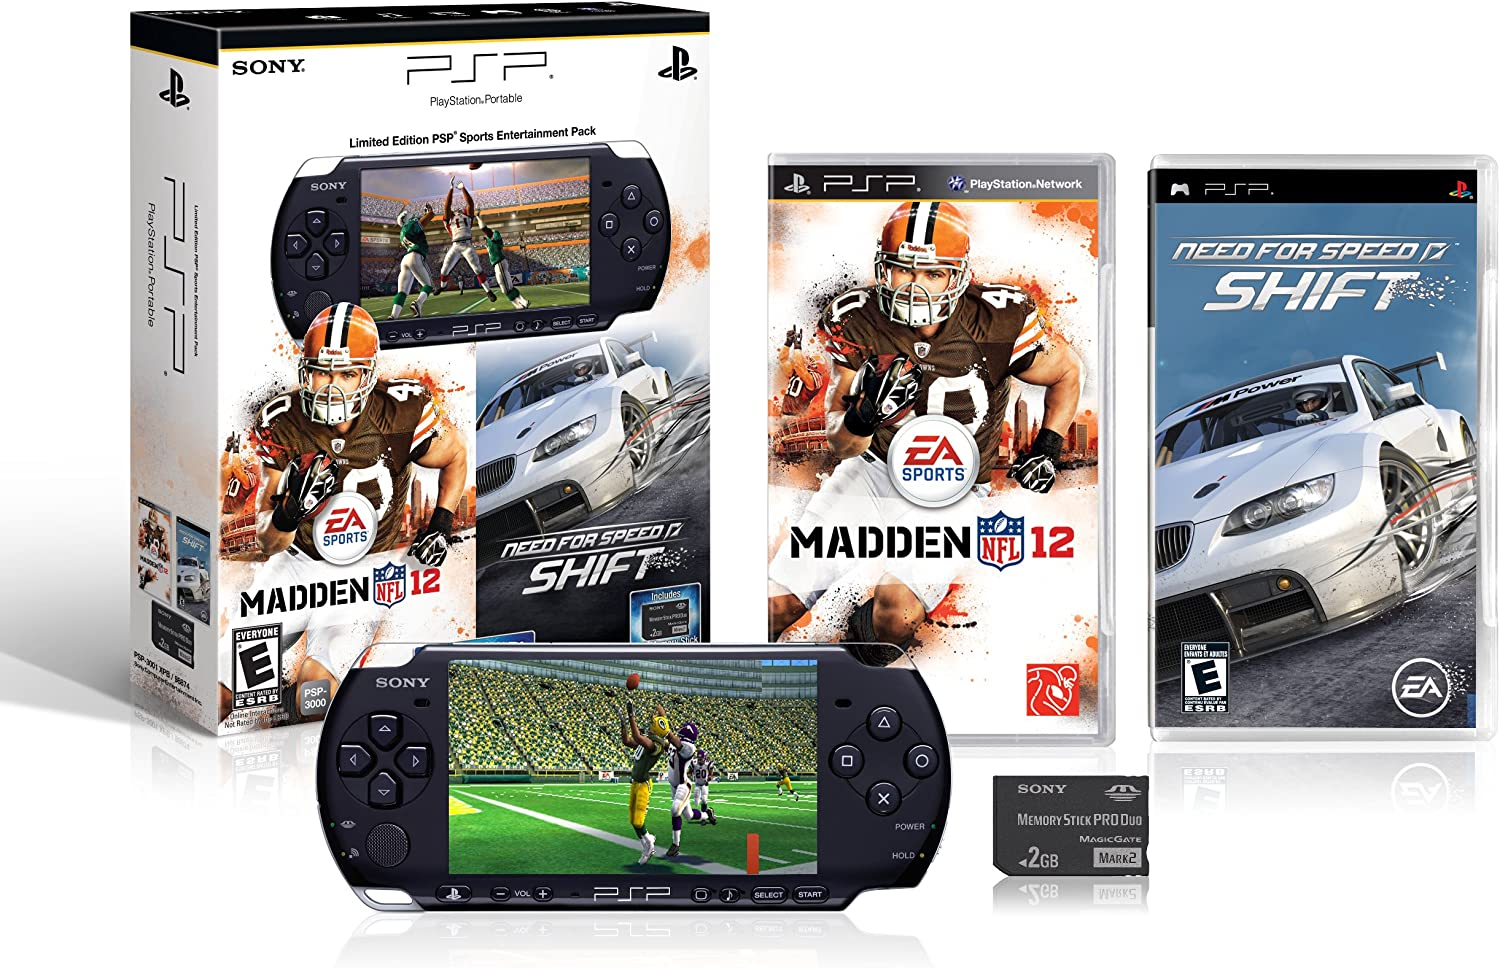 Amazon com: Limited Edition PSP Sports Entertainment Pack